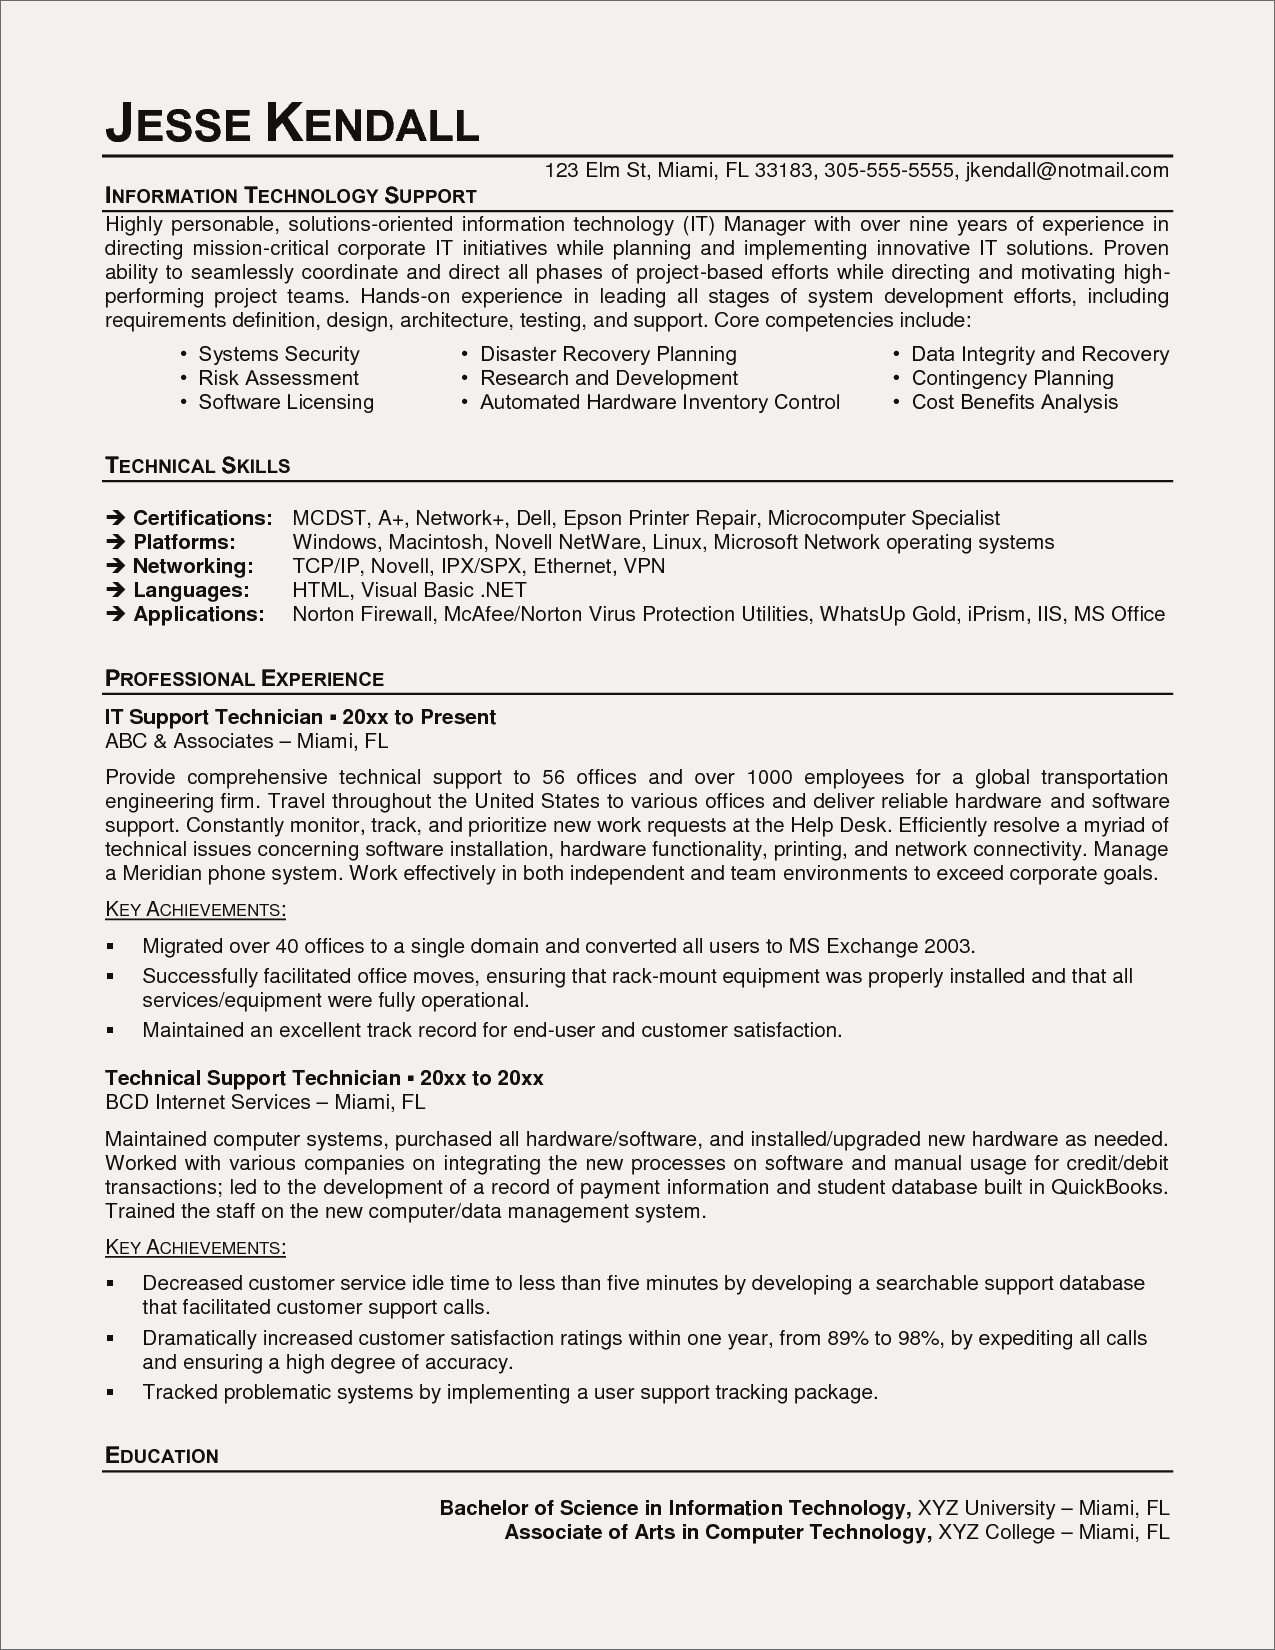 car education resume Collection-Technician Resume Examples New Auto Mechanic Resume American Resume Sample New Student Resume 0d 7-s